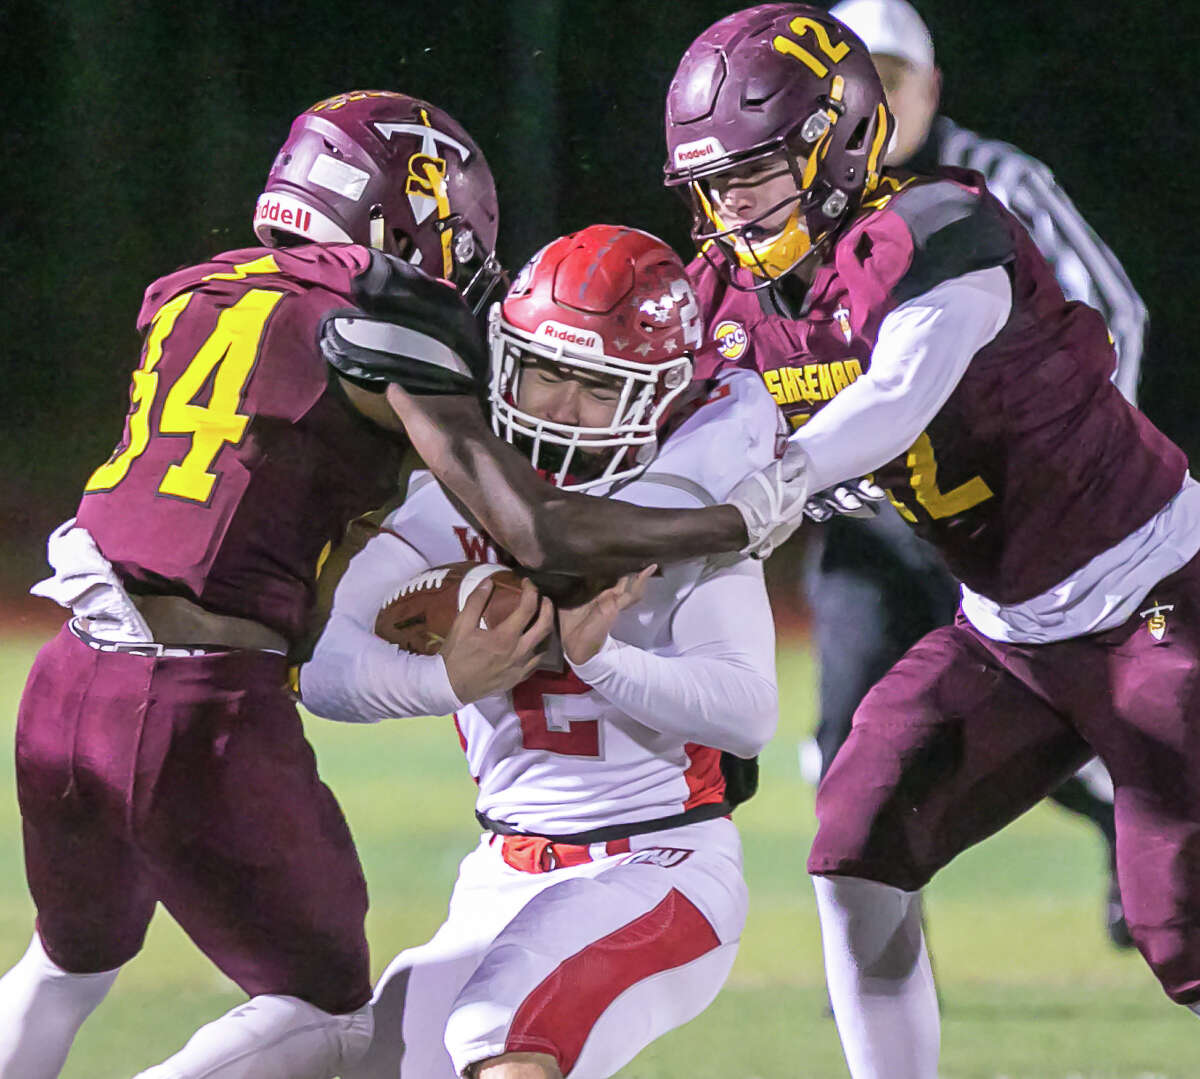 (John Vanacore/For Hearst Connecticut Media) Sheehan defenders Kyle Simmons(12) and Terrence Bogen(34) stop Wolcott running back Anthony Ligi after a short gain during the Titan's CIAC Class M quartfinal win Tuesday.